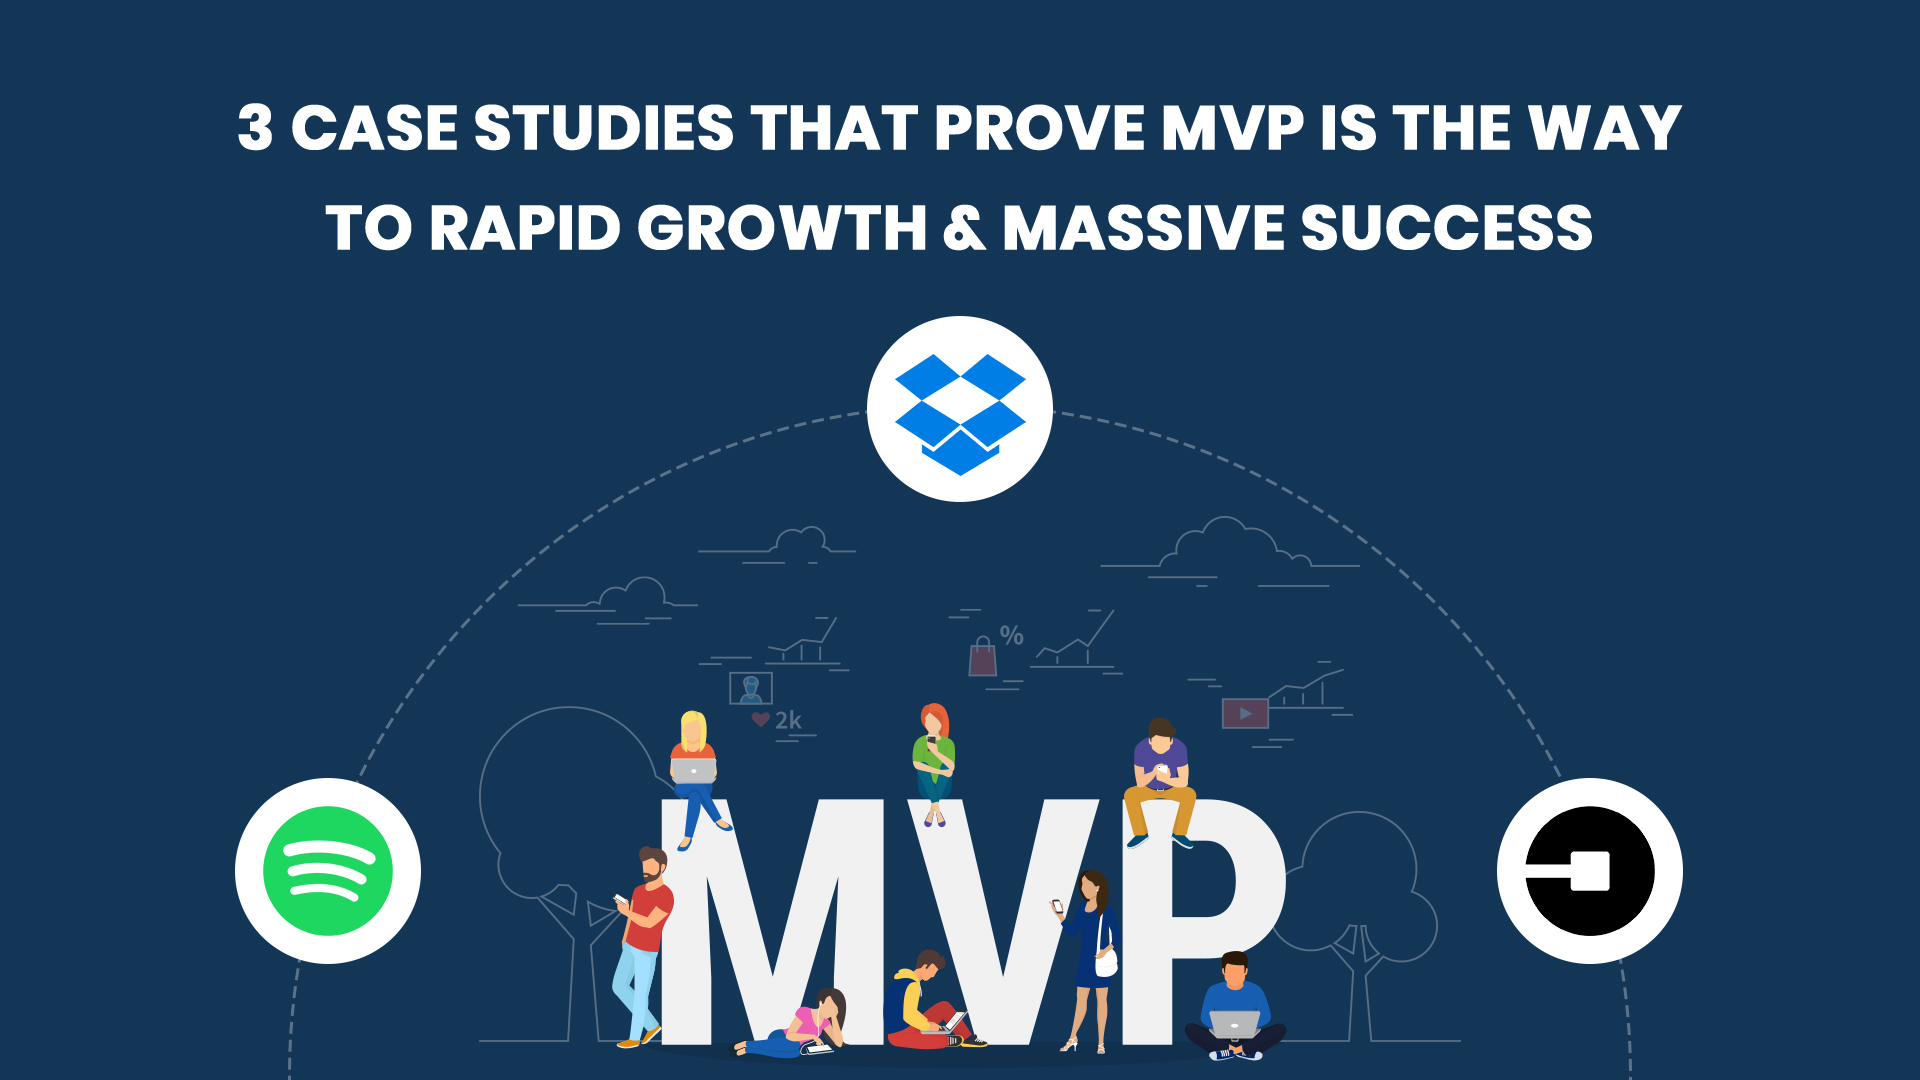 3 Case Studies That Prove MVP is the Way to Rapid Growth & Massive Success